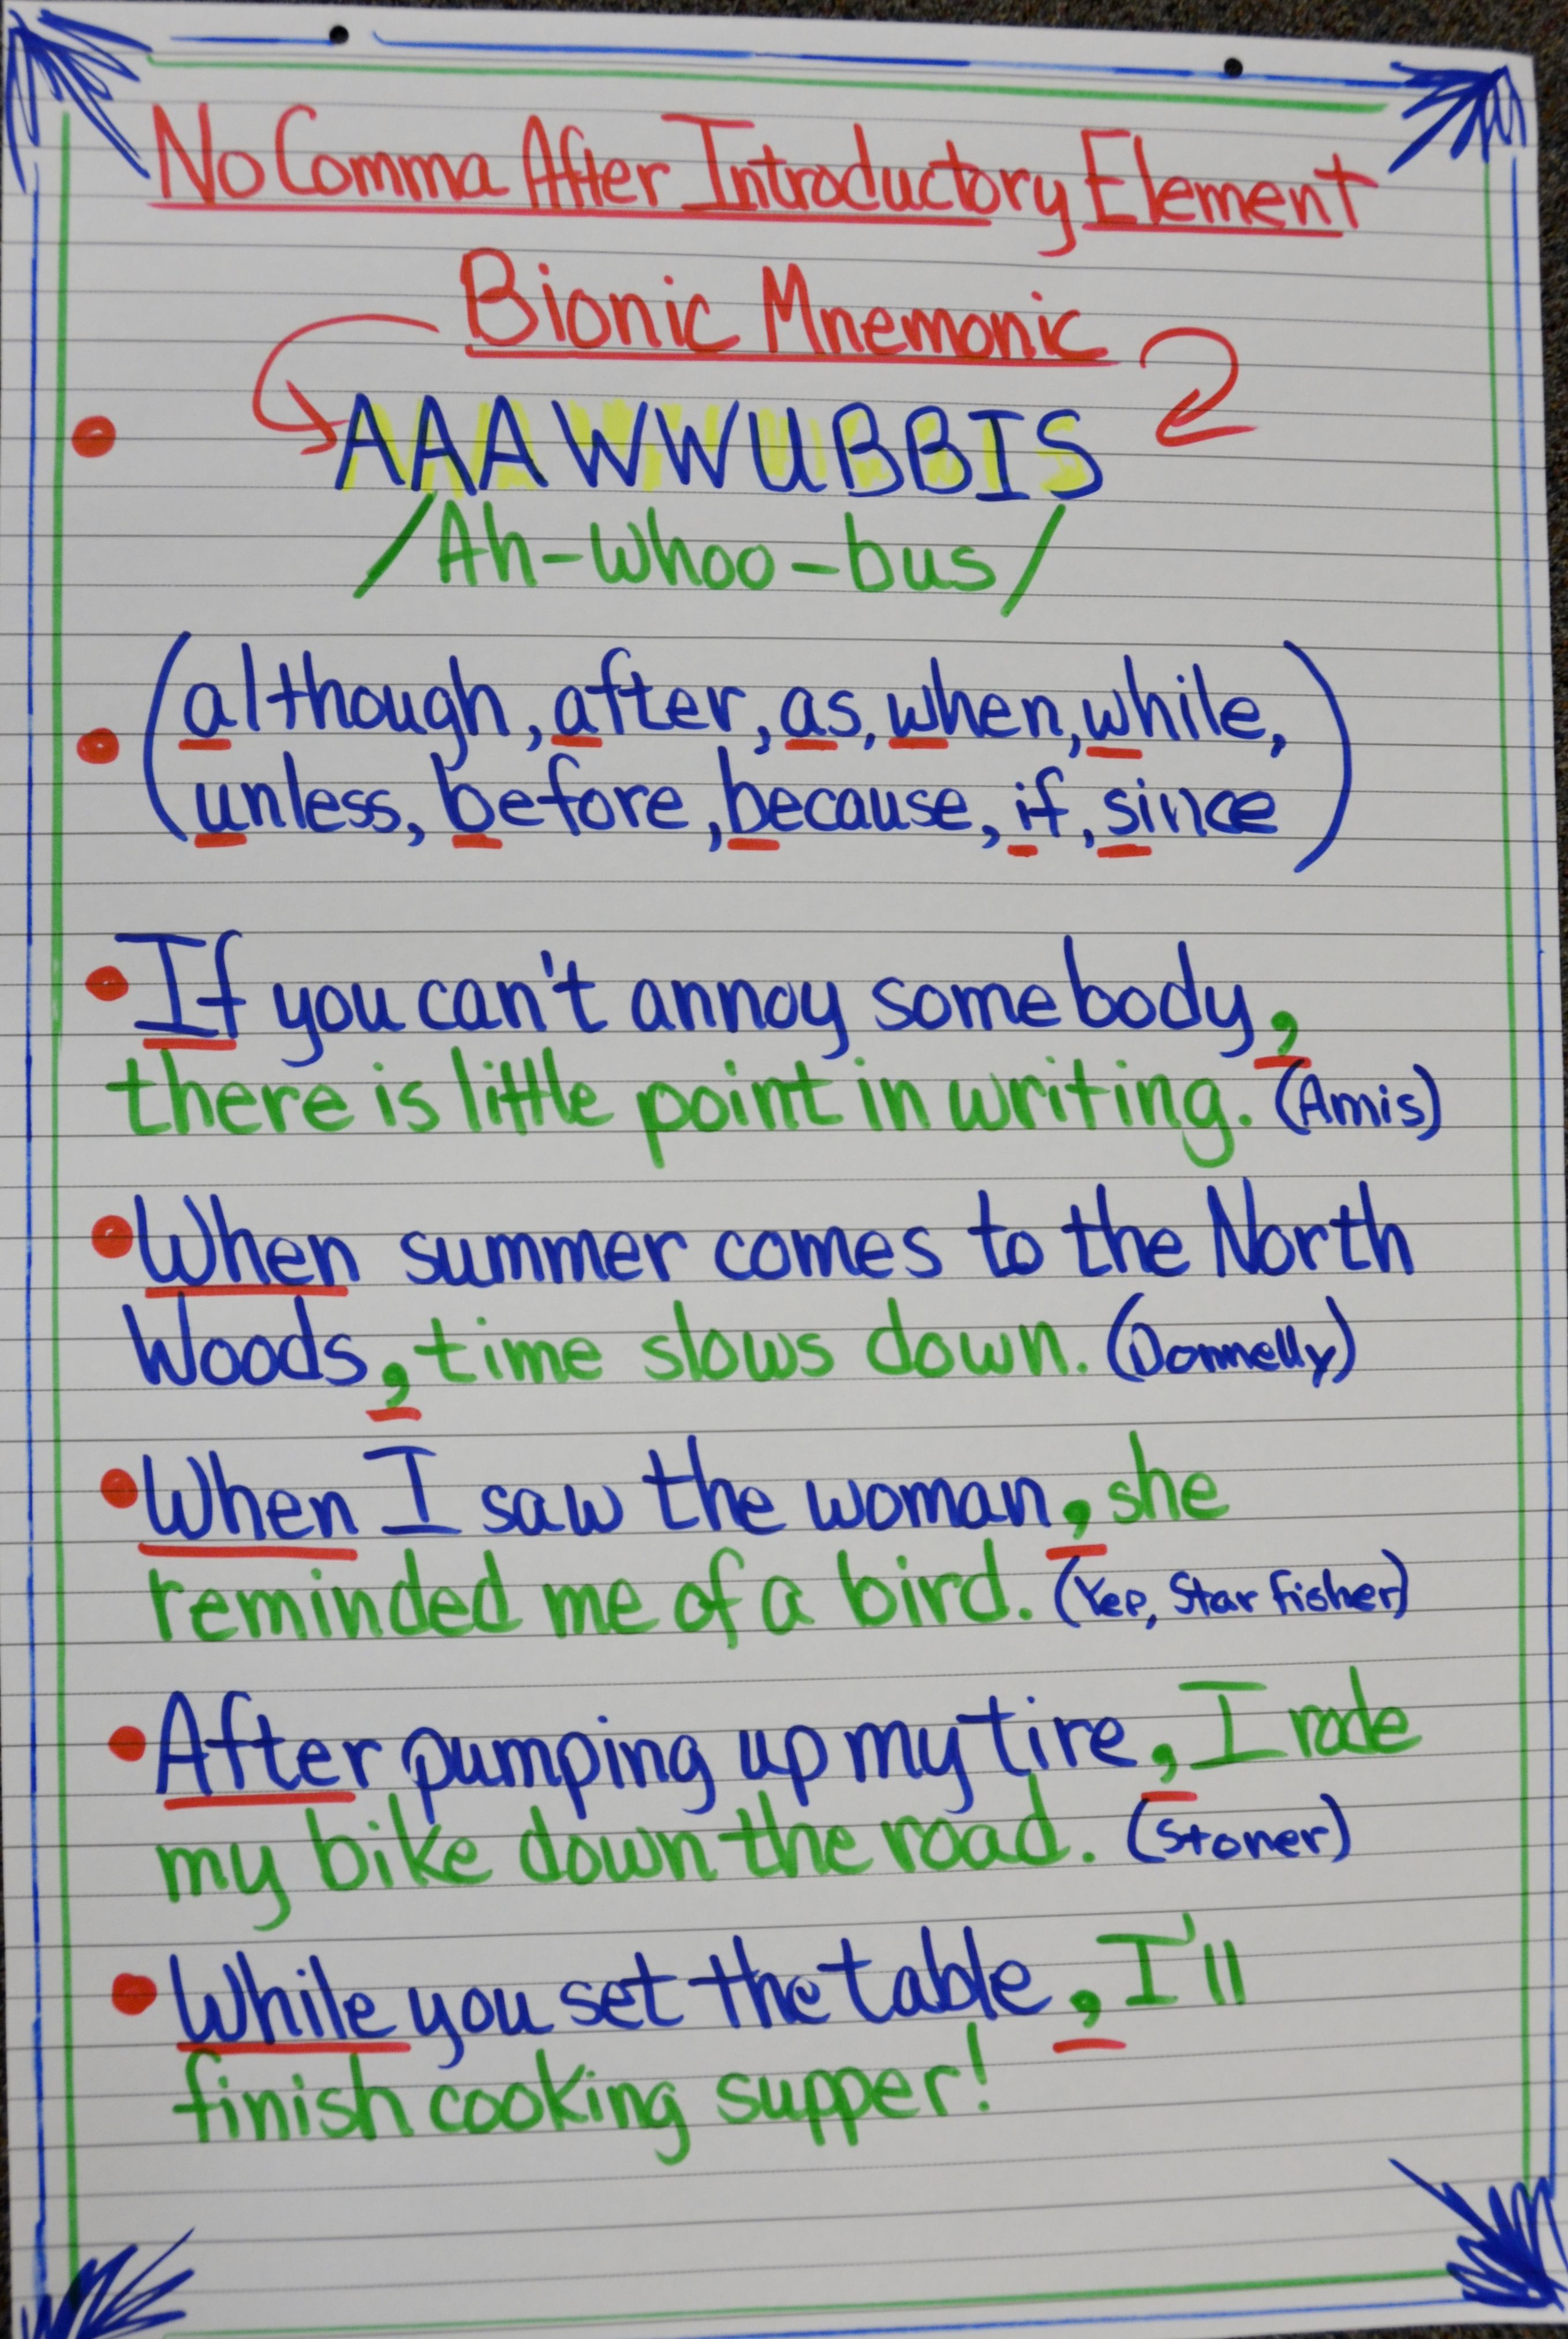 Aaawwubbis Great For Prepositional Phrases And Varied